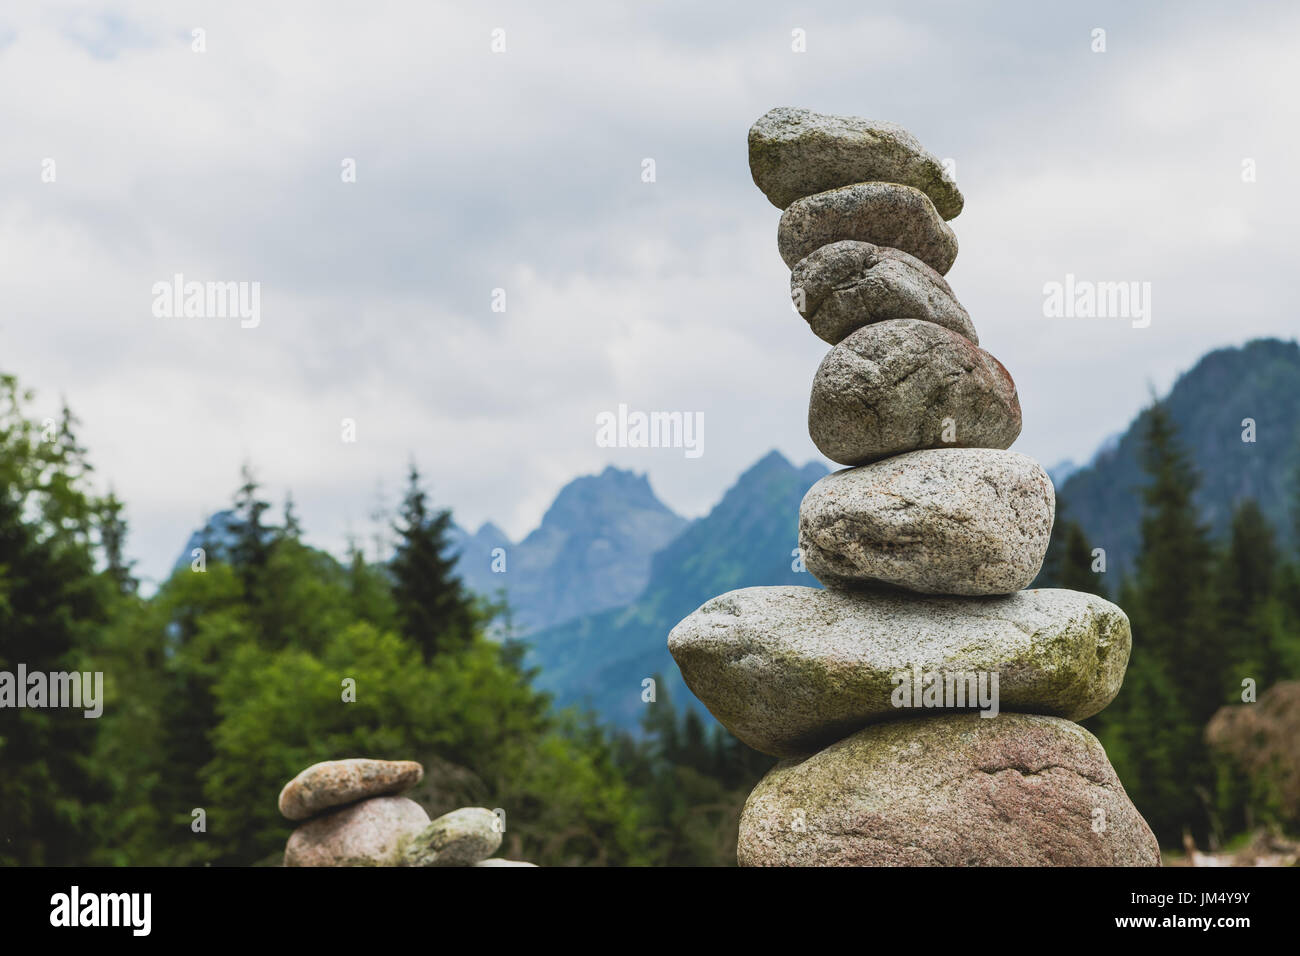 Stones balance, hierarchy stack over cloudy sky in mountains. Inspiring stability concept on rocks. - Stock Image